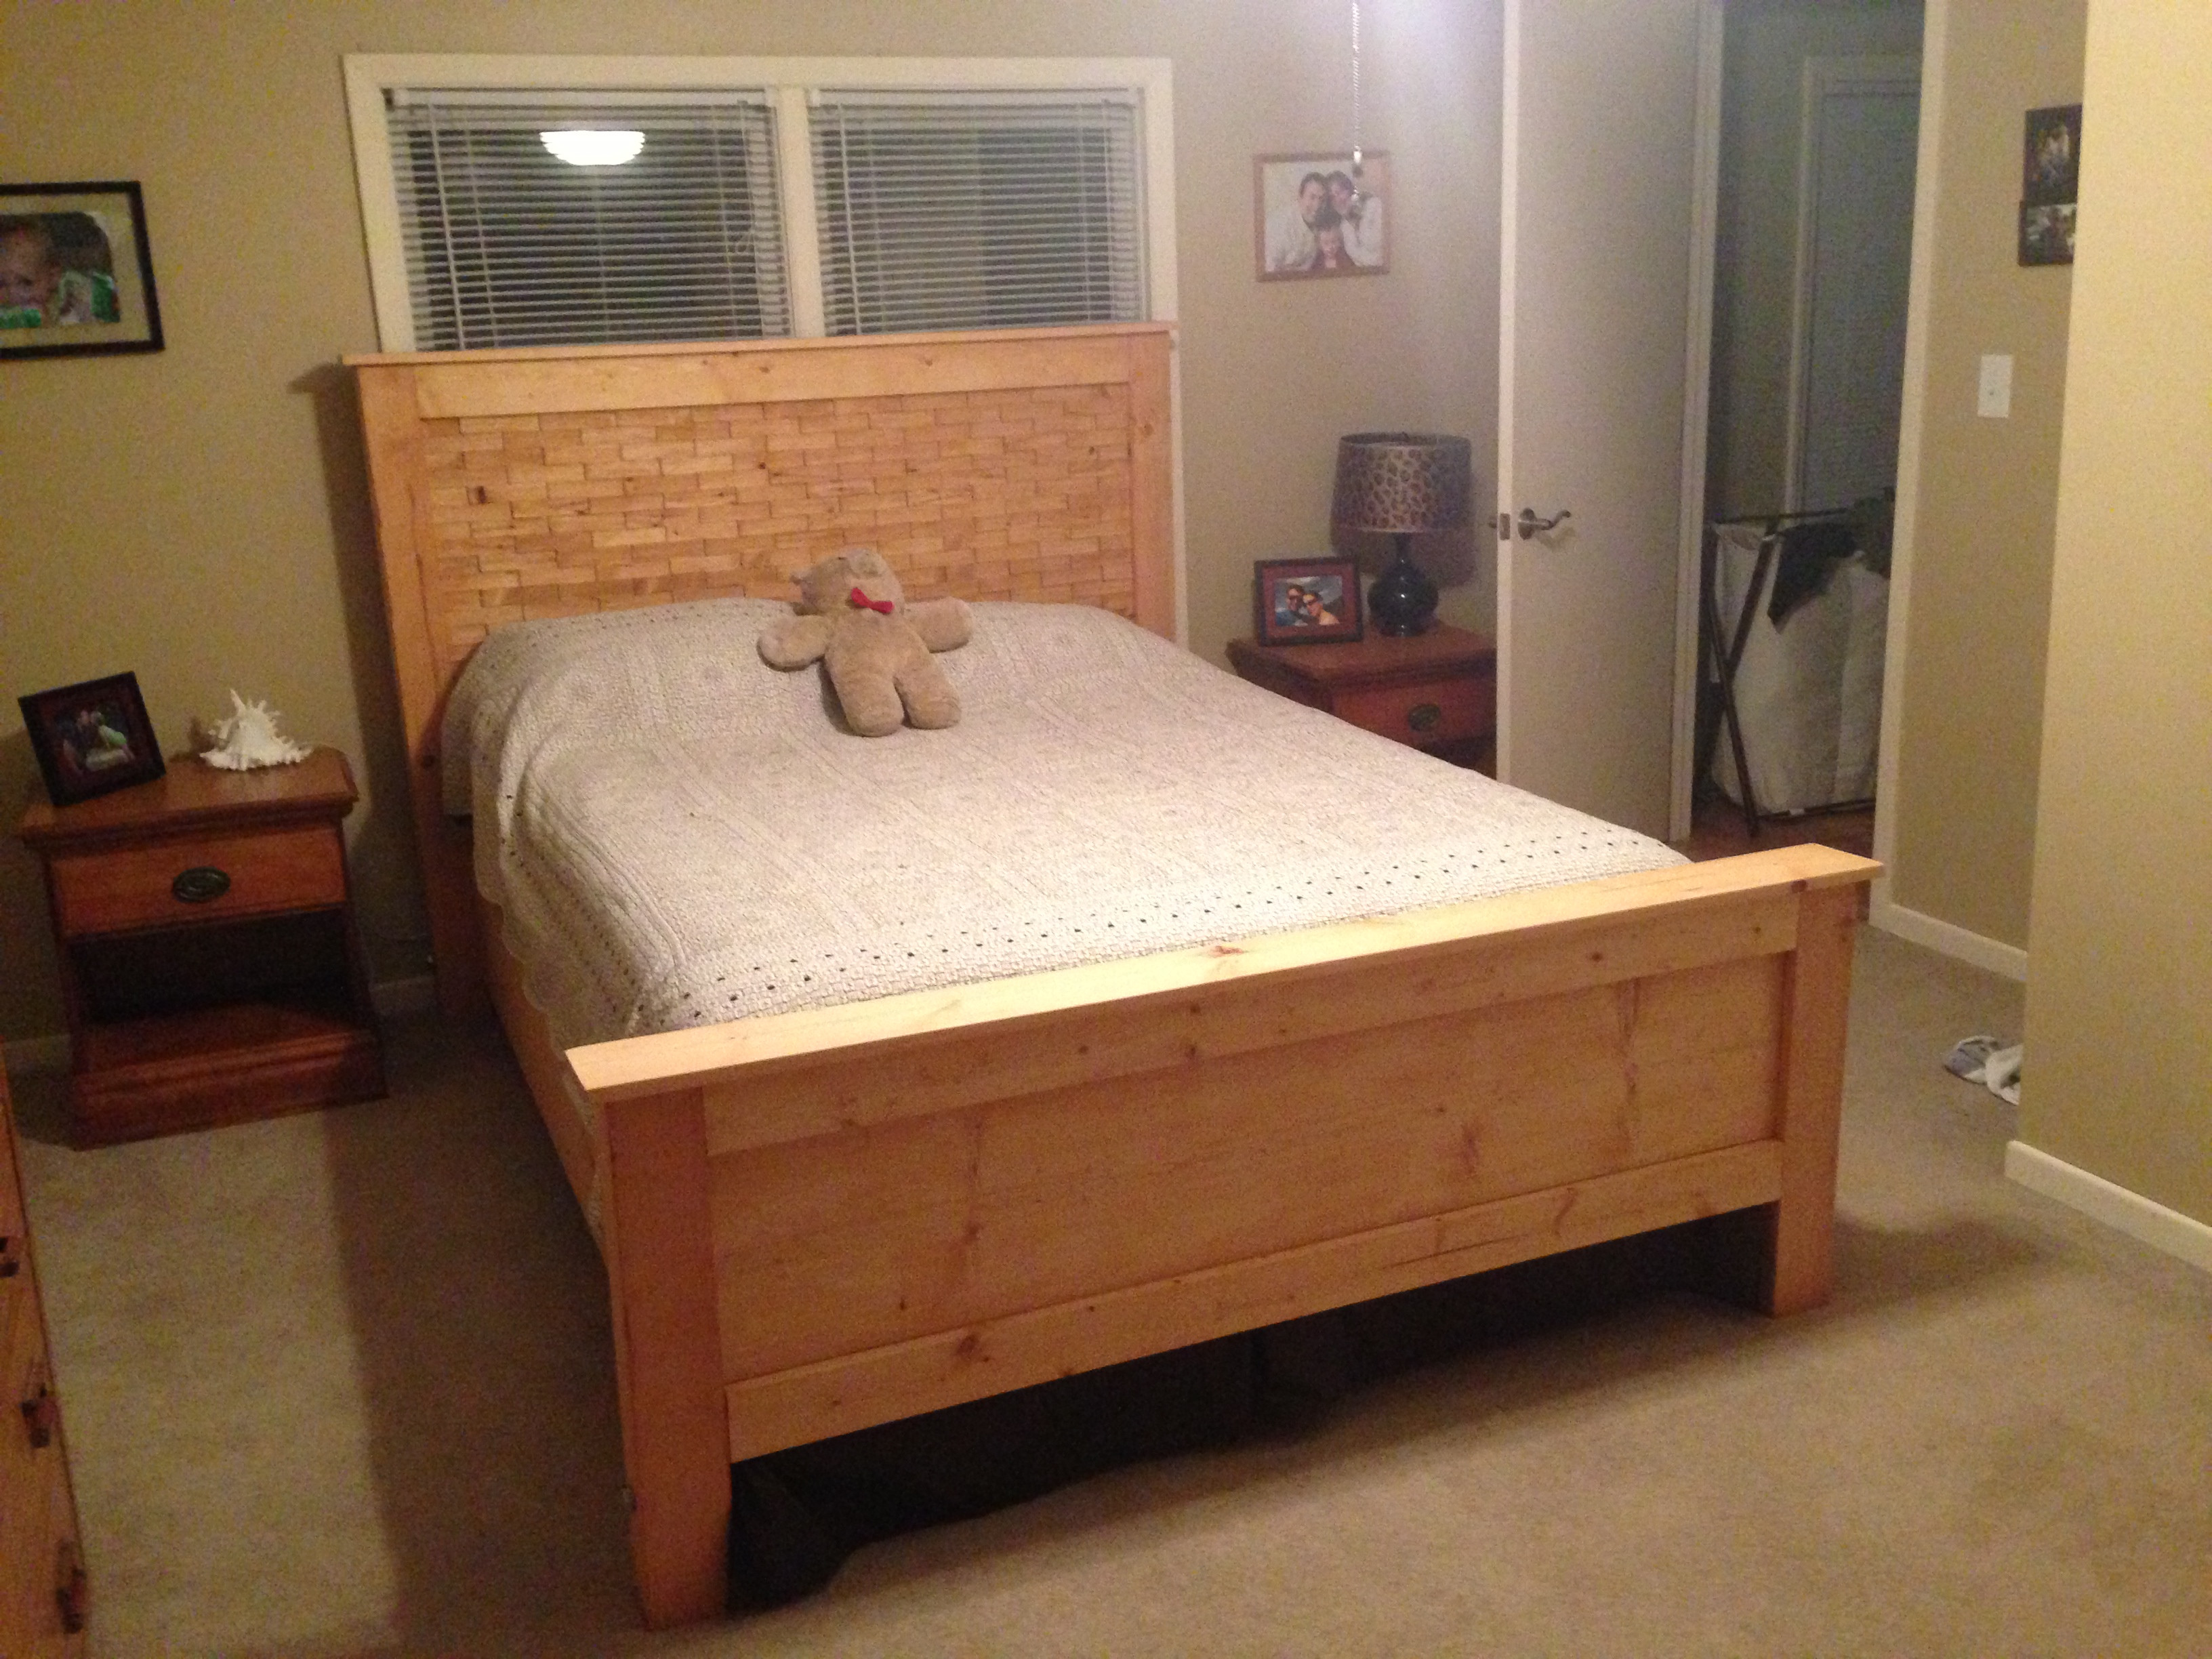 Best ideas about DIY Wood Bed . Save or Pin Ana White Now.